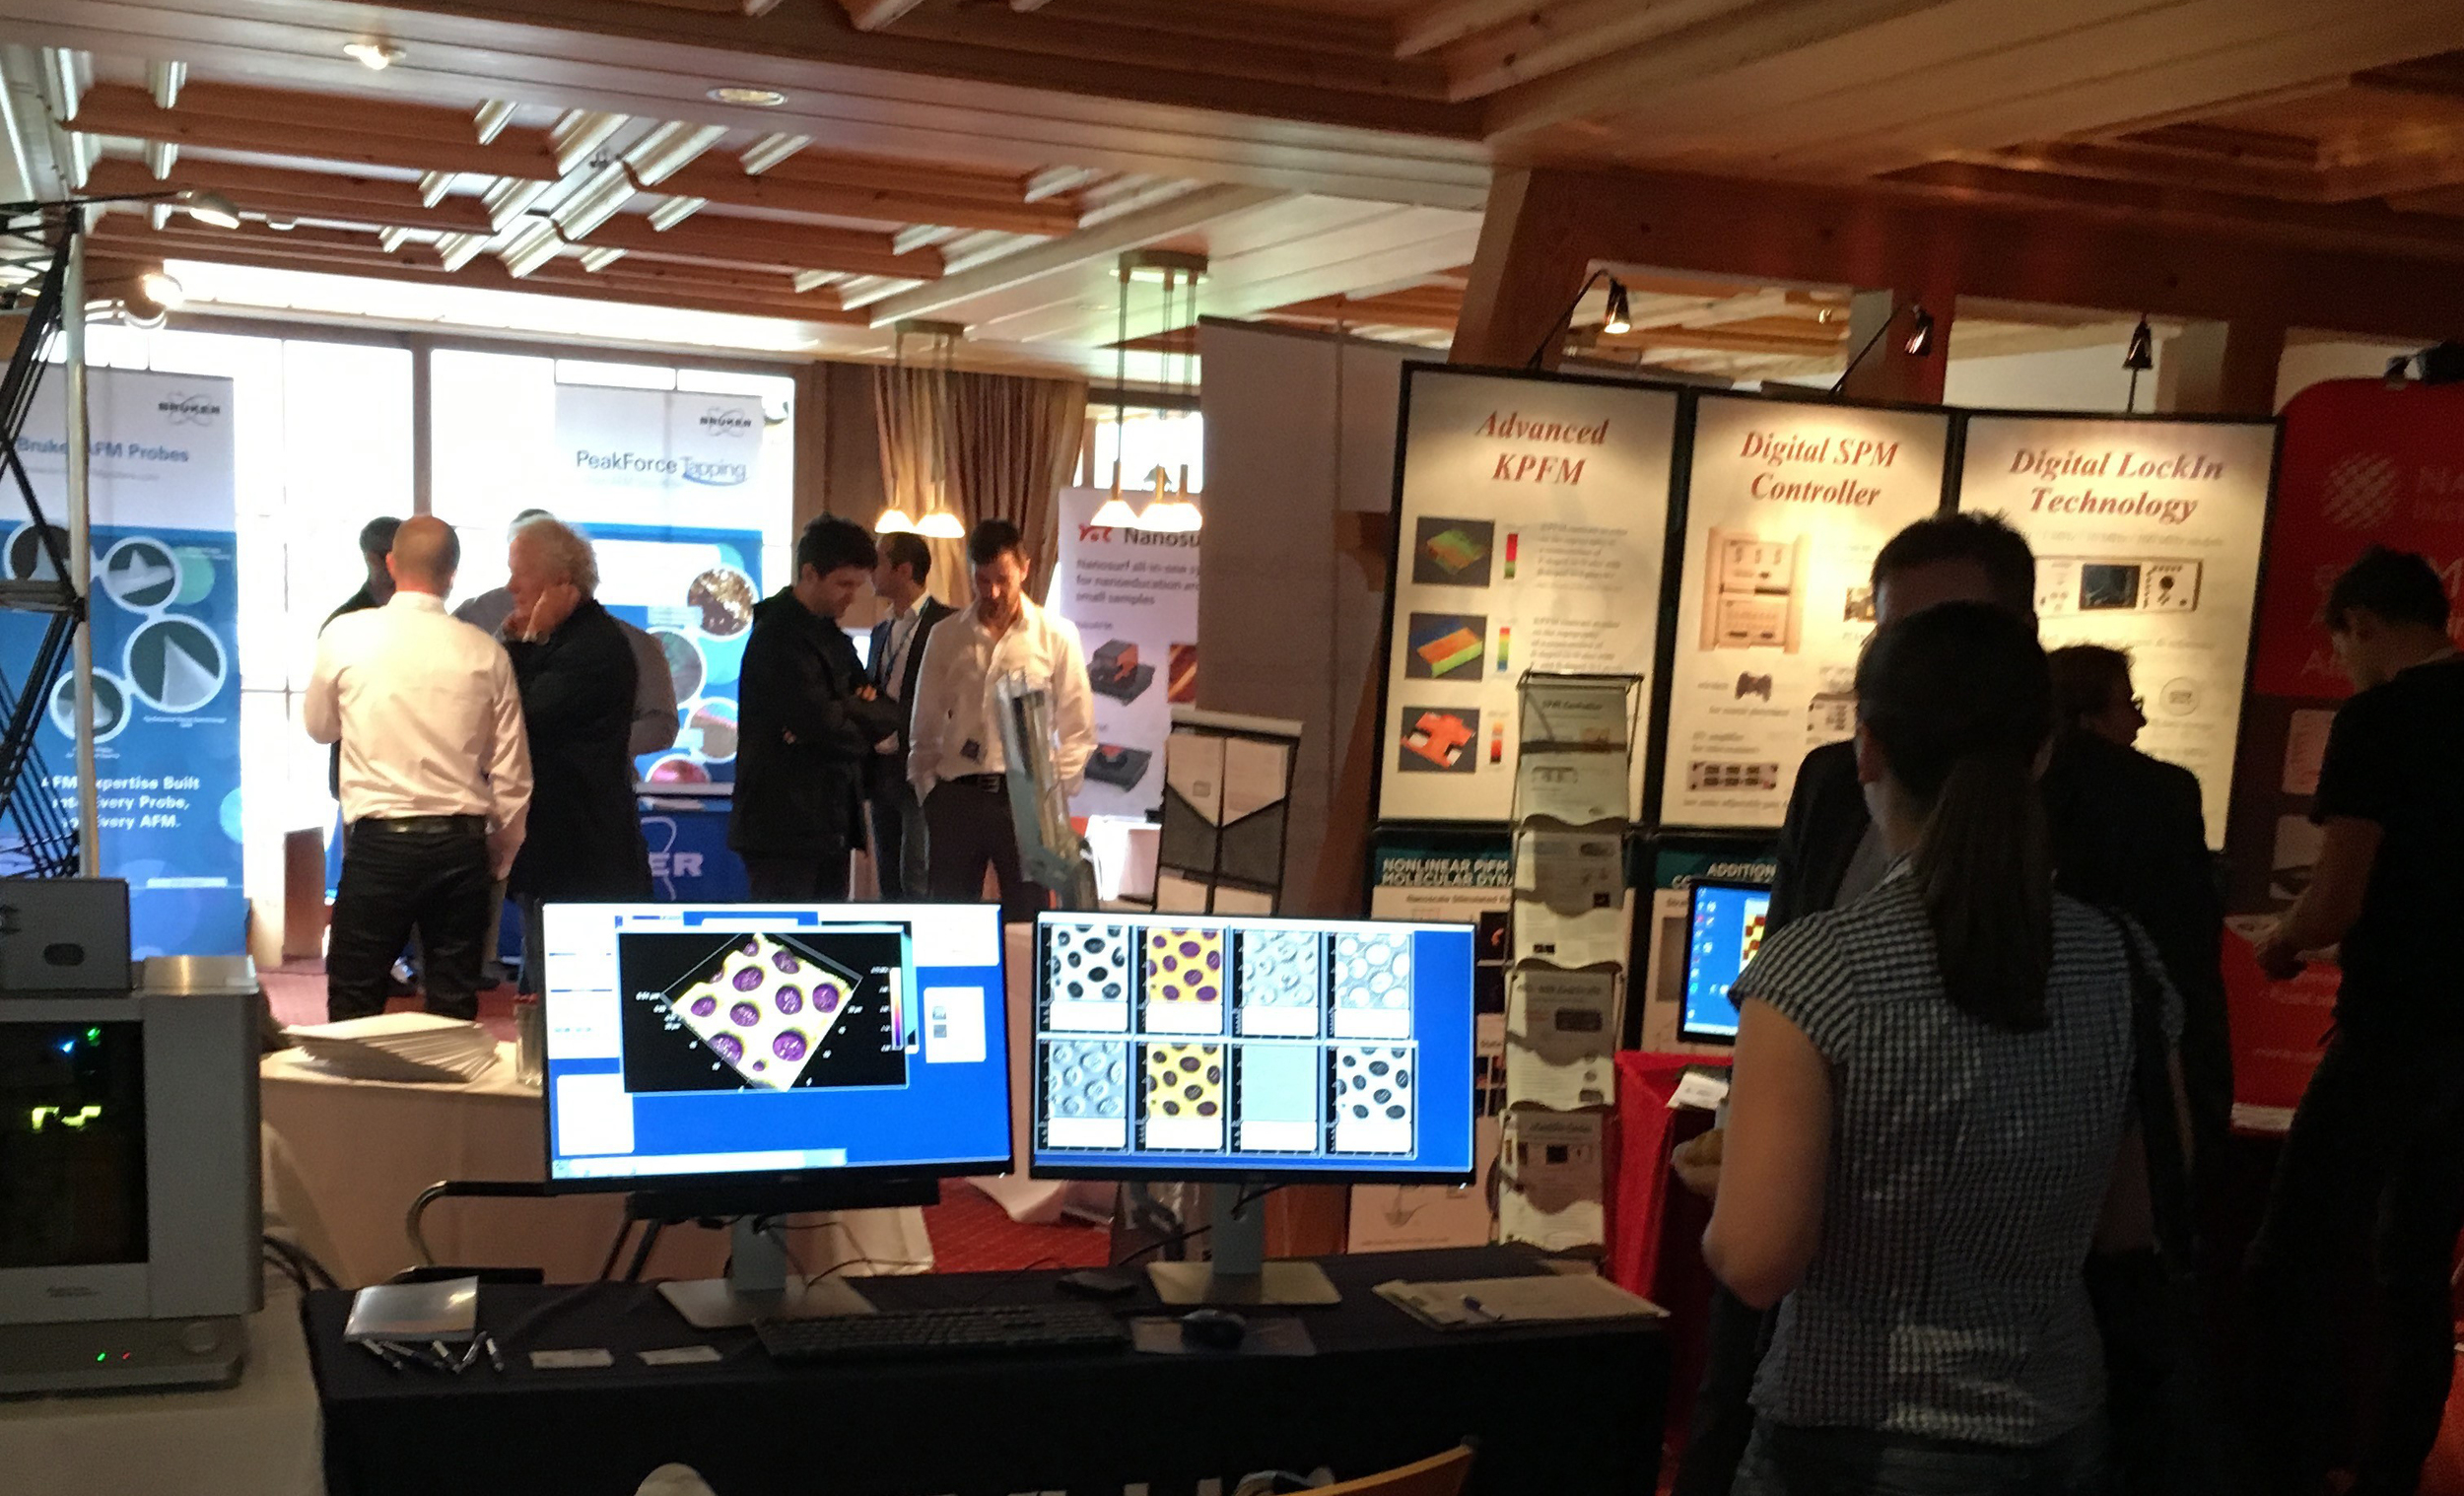 The exhibition at ISPM 2016